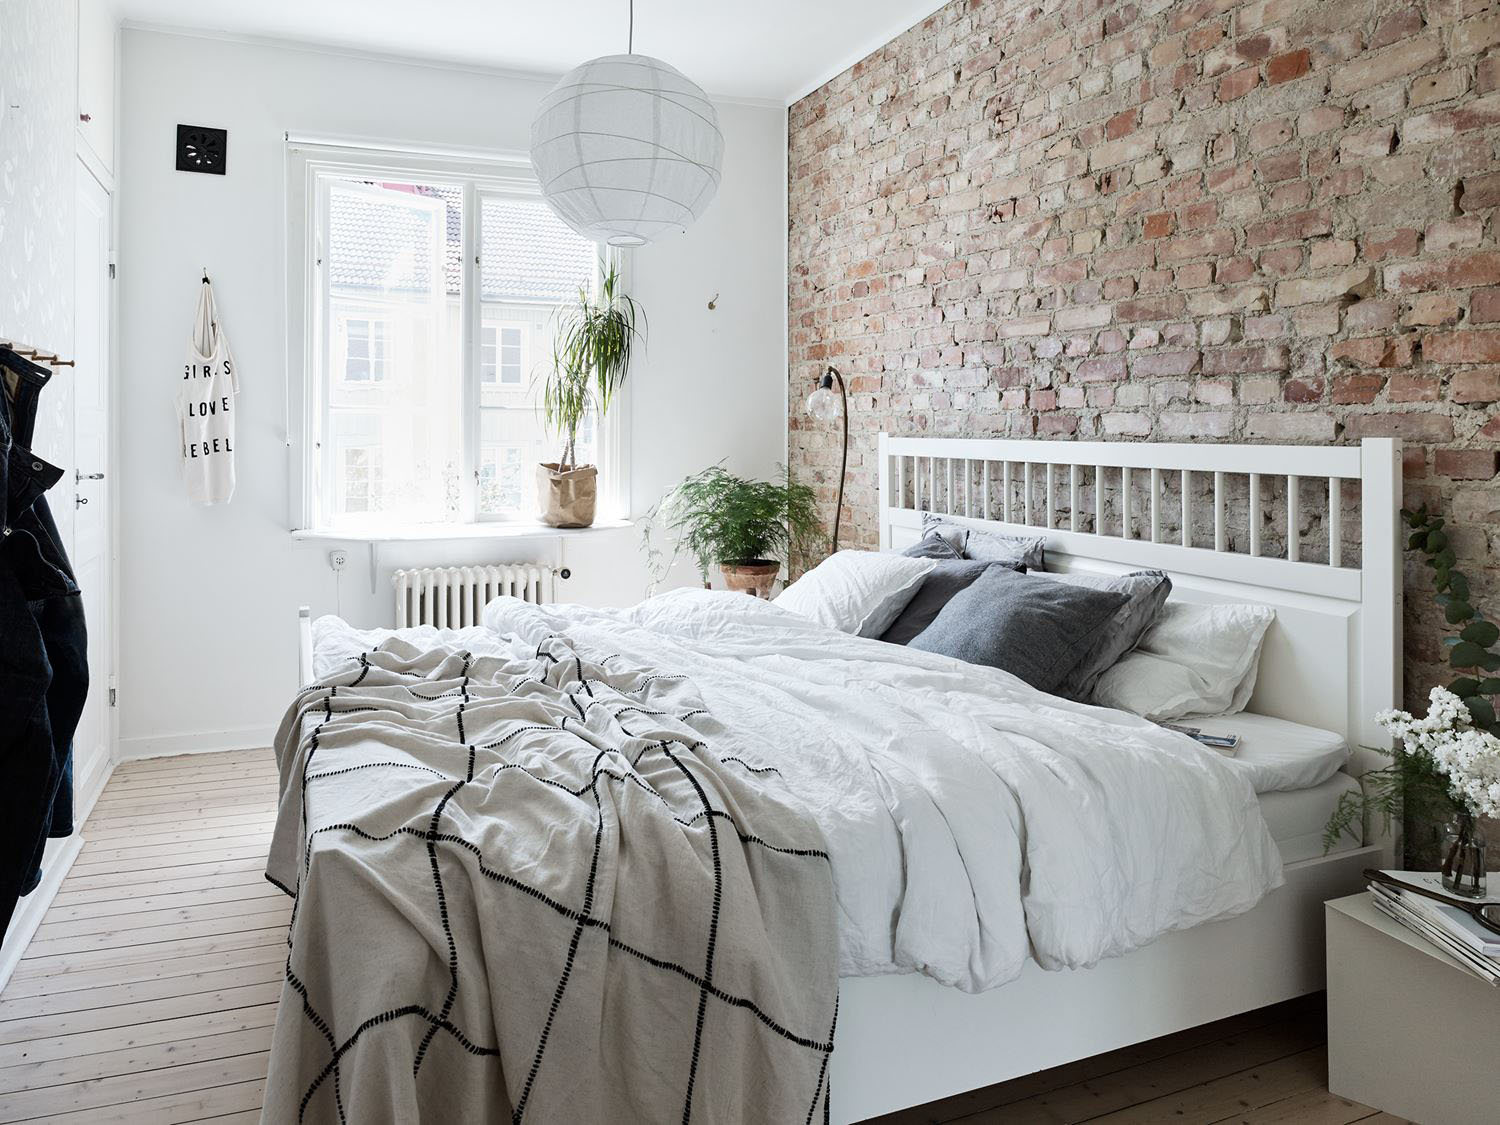 Charming Bedroom with Brick Wall